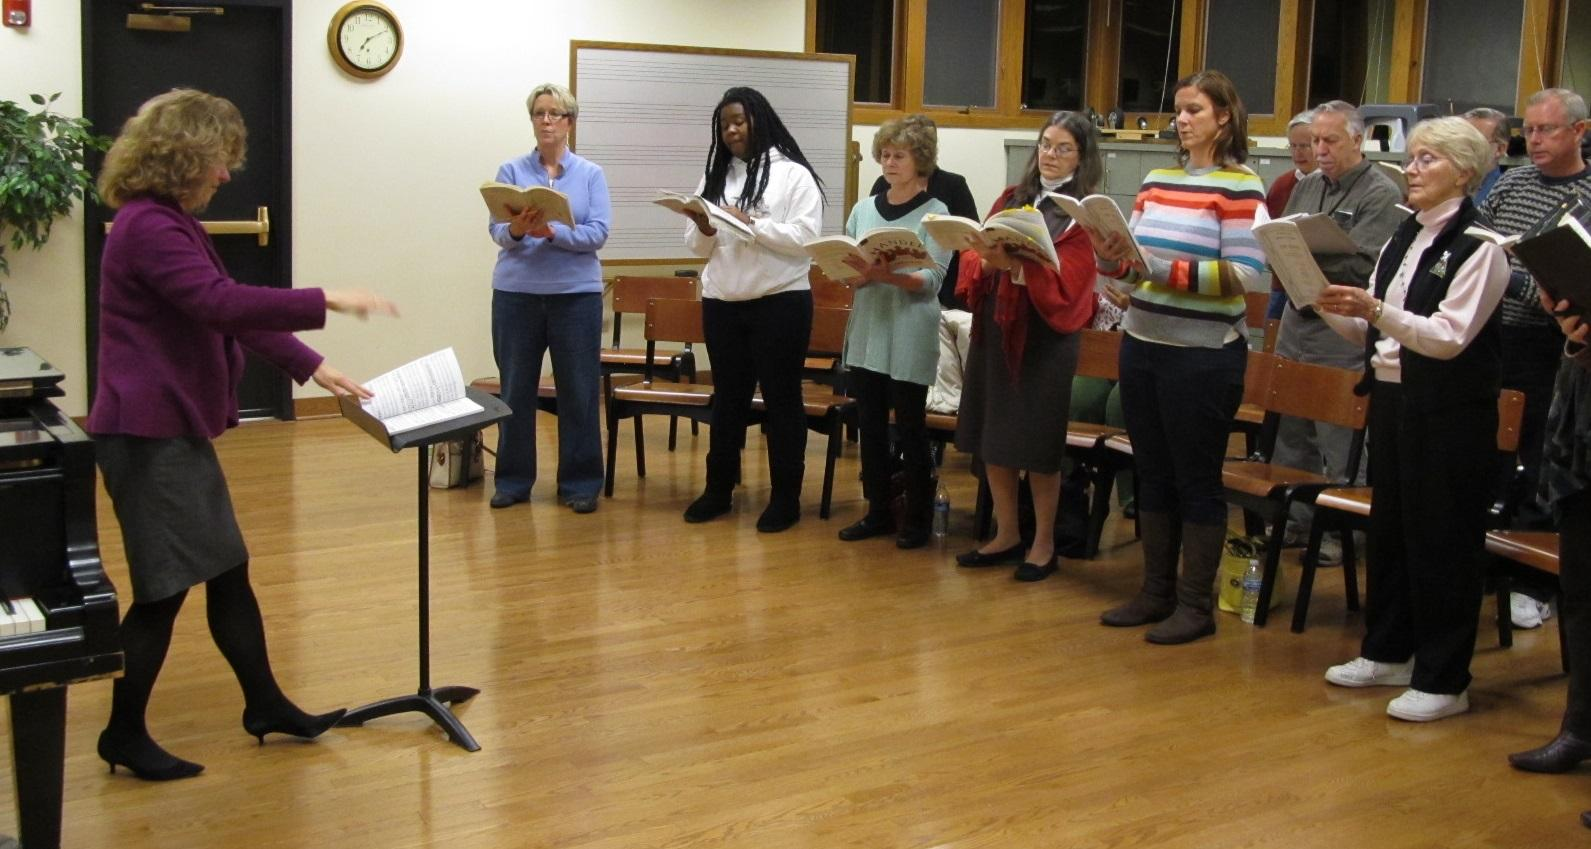 Fox Valley Orchestra Chorus Director Lisa Fredenburgh leads a practice in preparation for the organization's annual 'Sing-a-long Messiah' (photo courtesy of Guy Stephens)